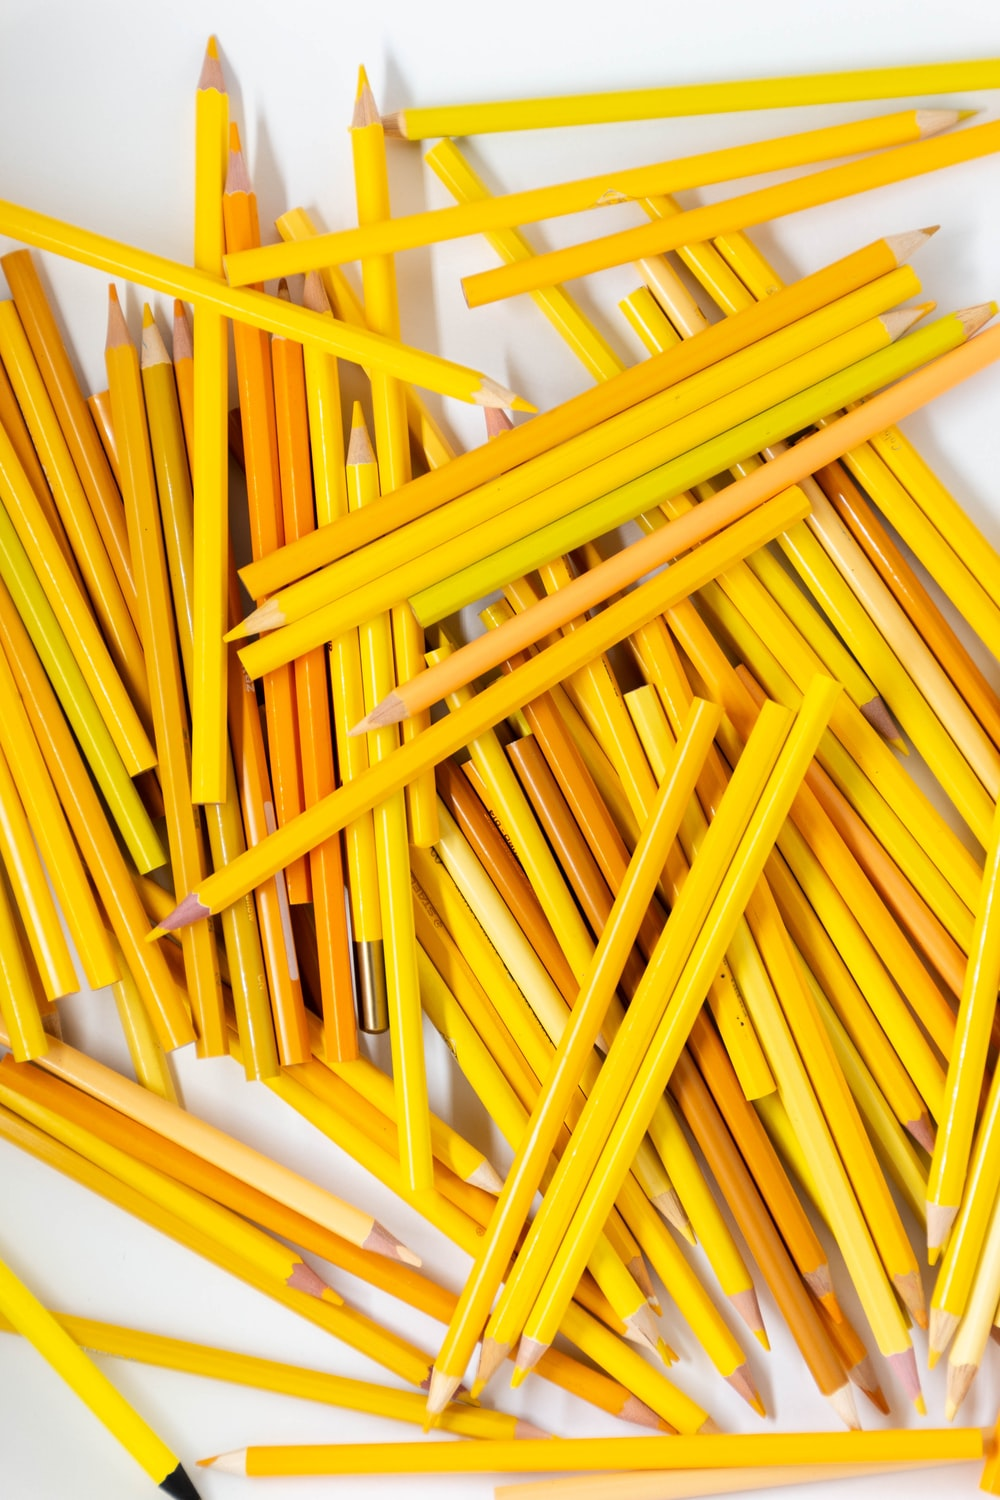 yellow pencils on white surface